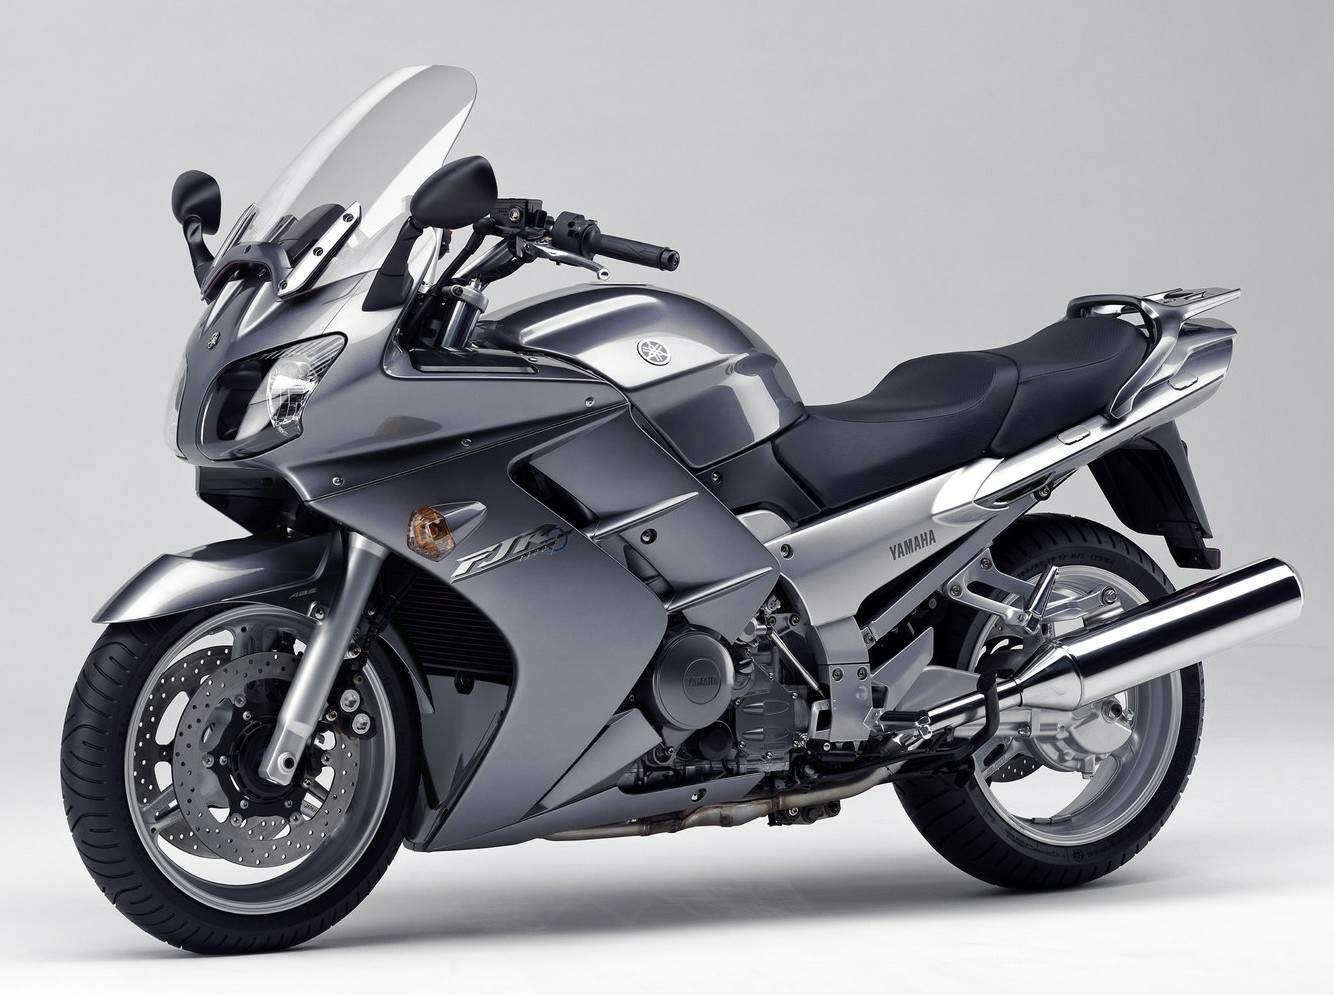 Yamaha fjr 1300 one of the finest sport touring motorcycle for Yamaha sport motorcycles